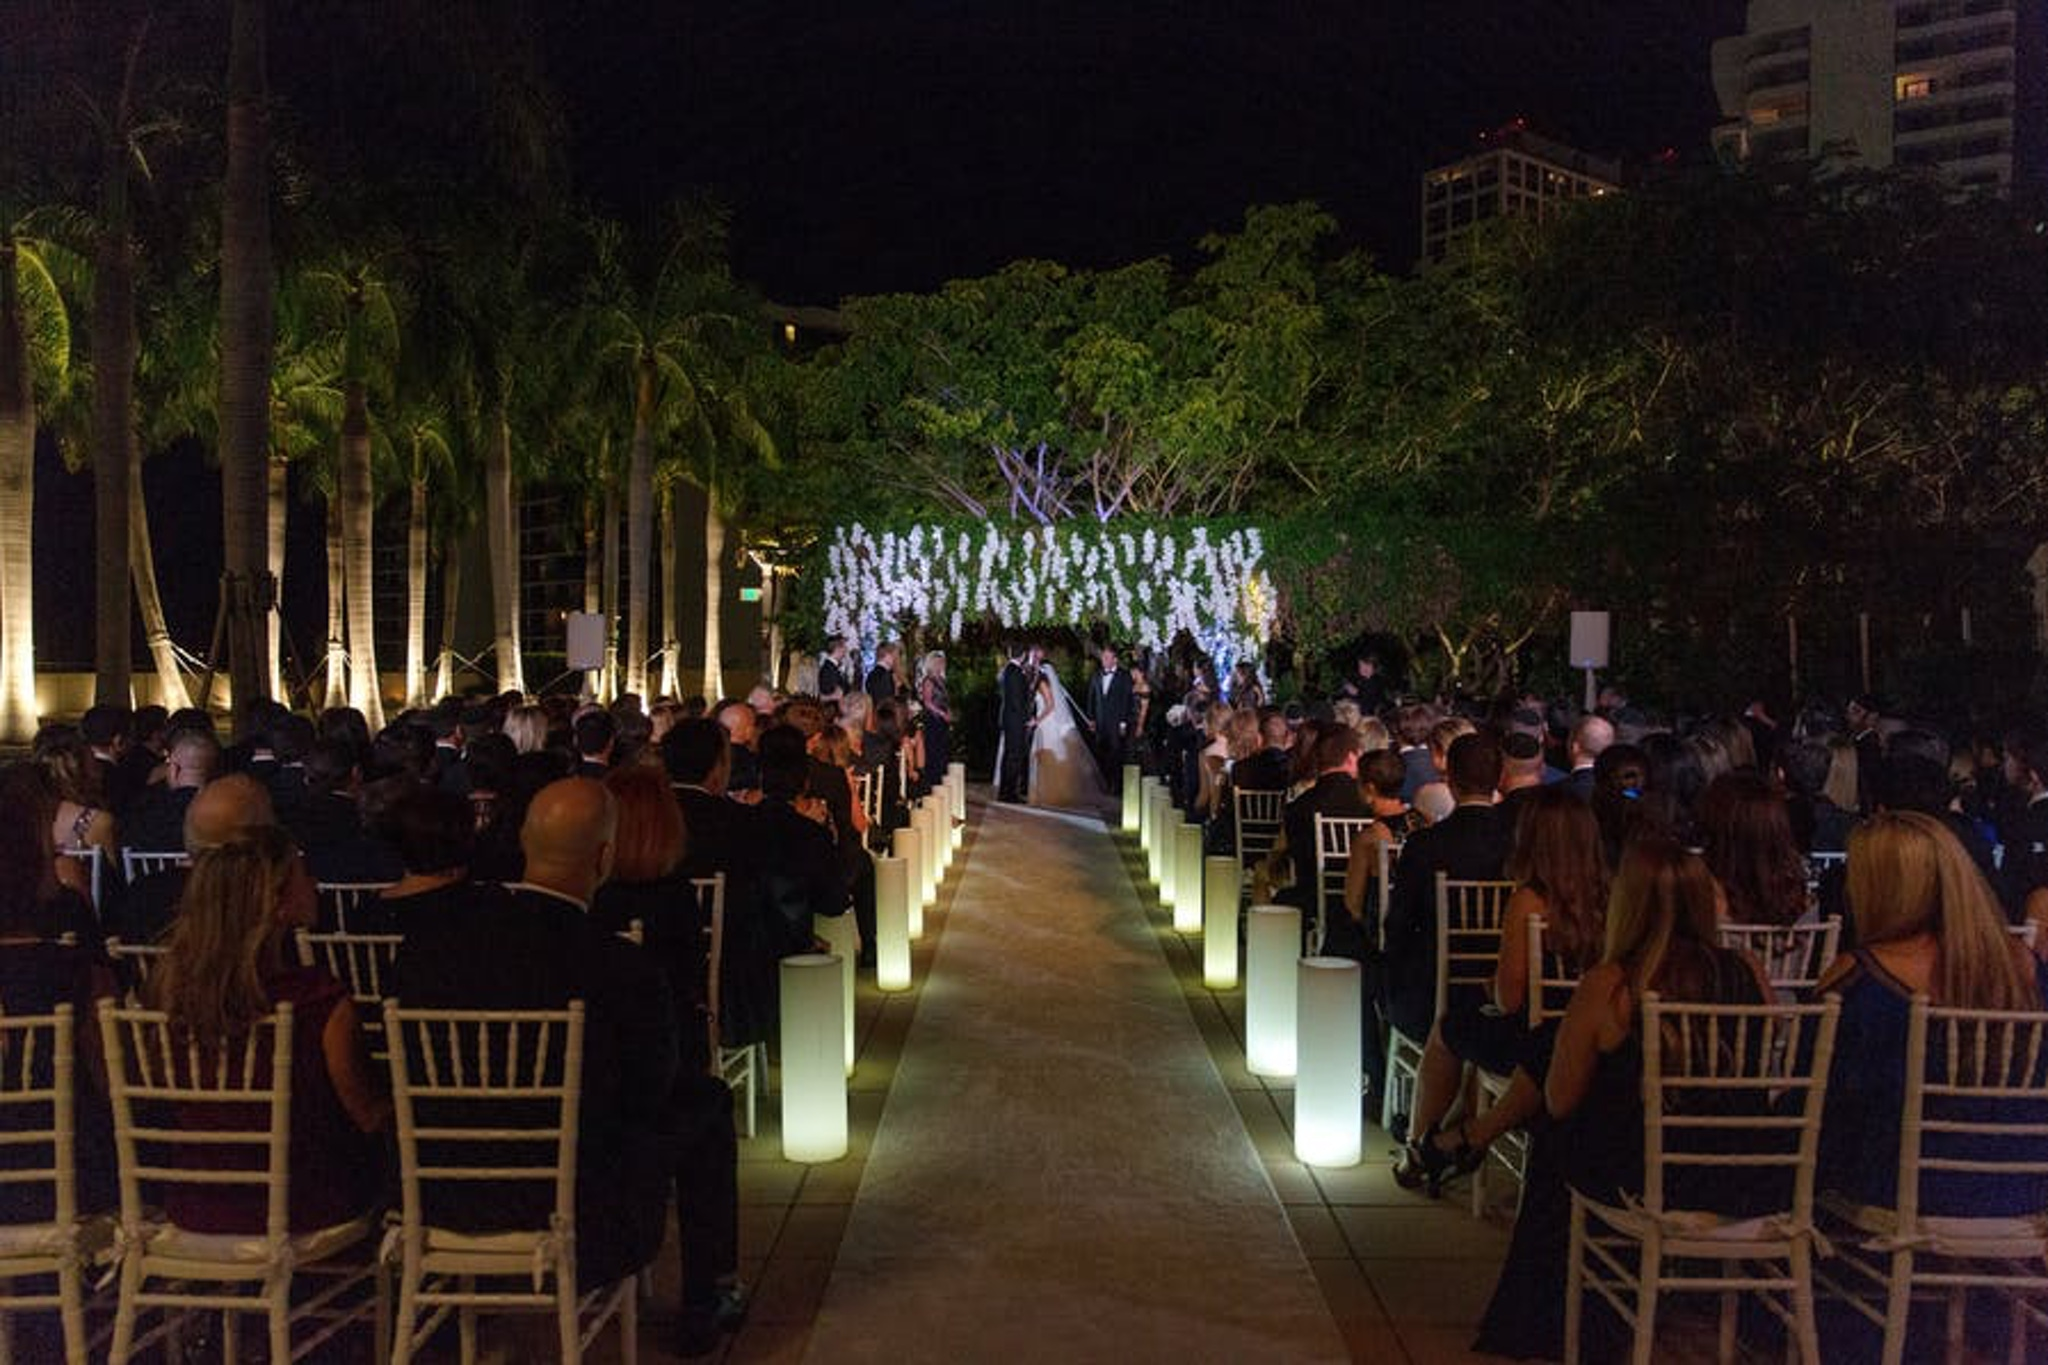 Lit up walkway at The Four Seasons Hotel Miami